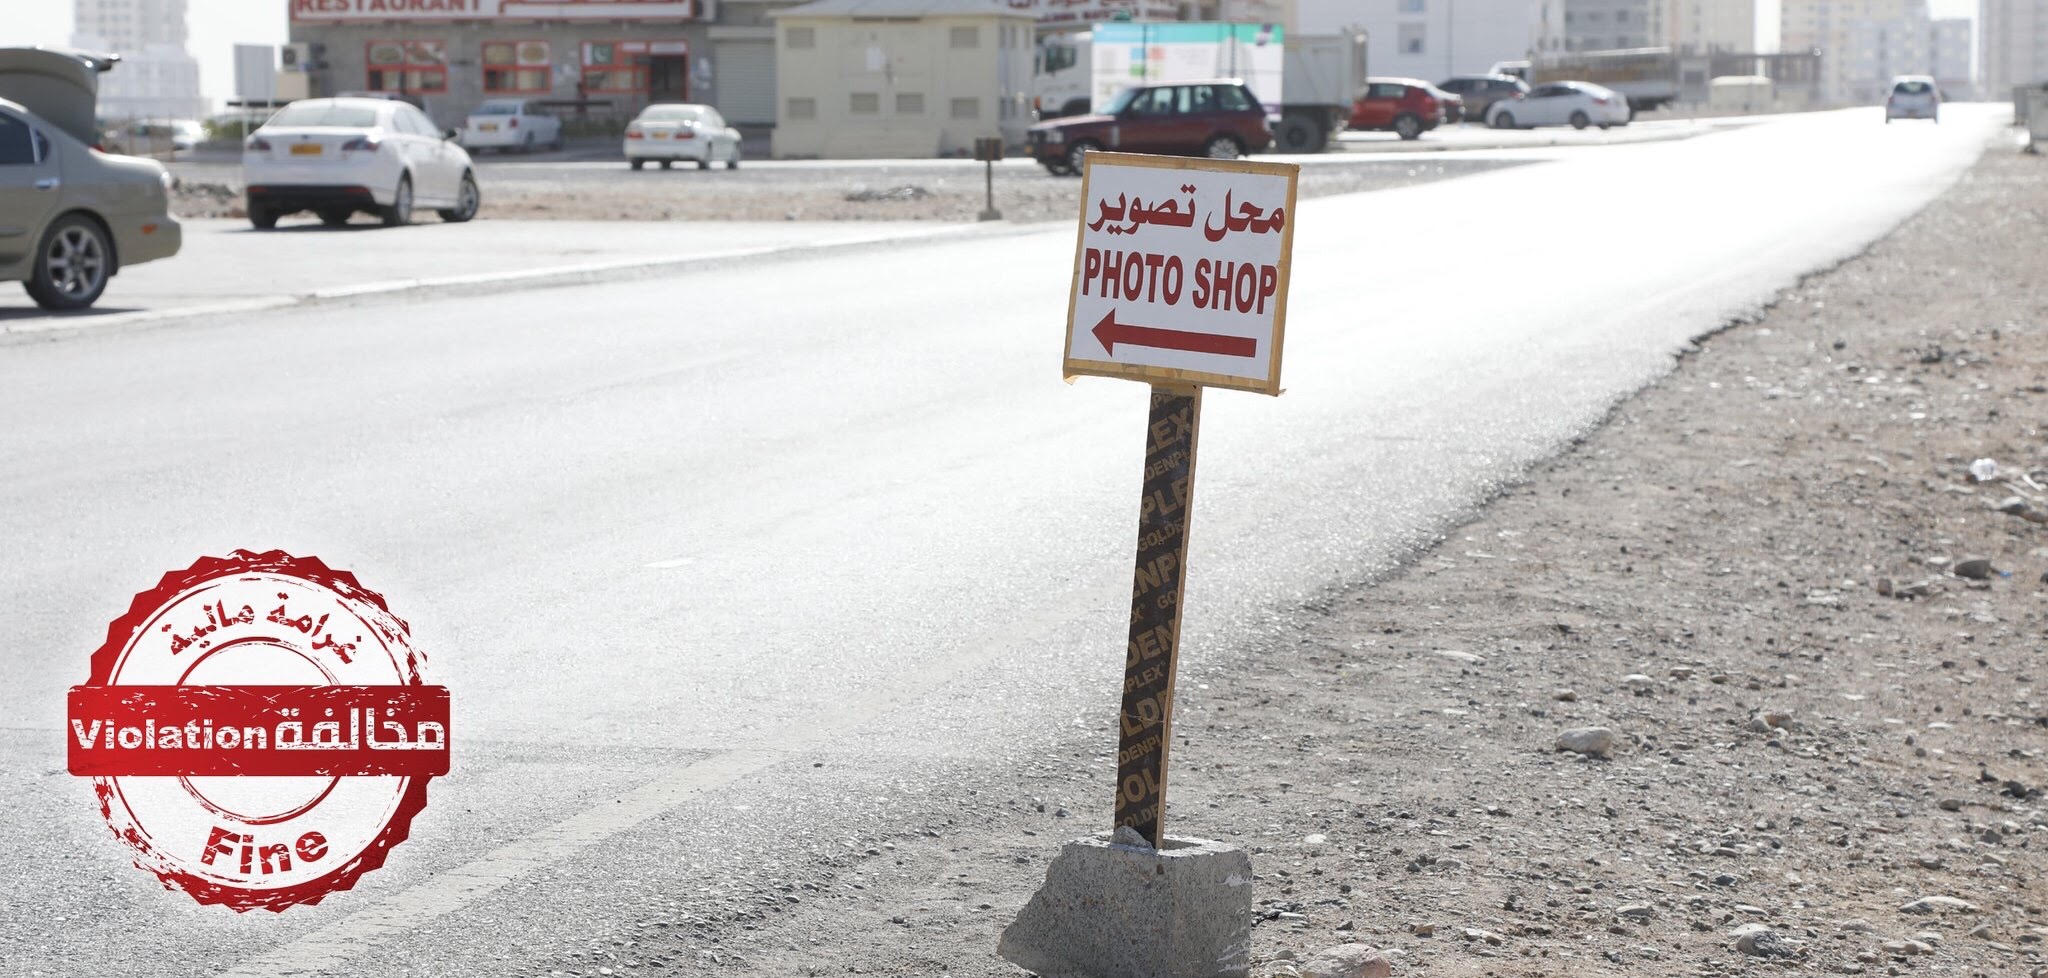 Companies must abide by advertising rules: Muscat Municipality